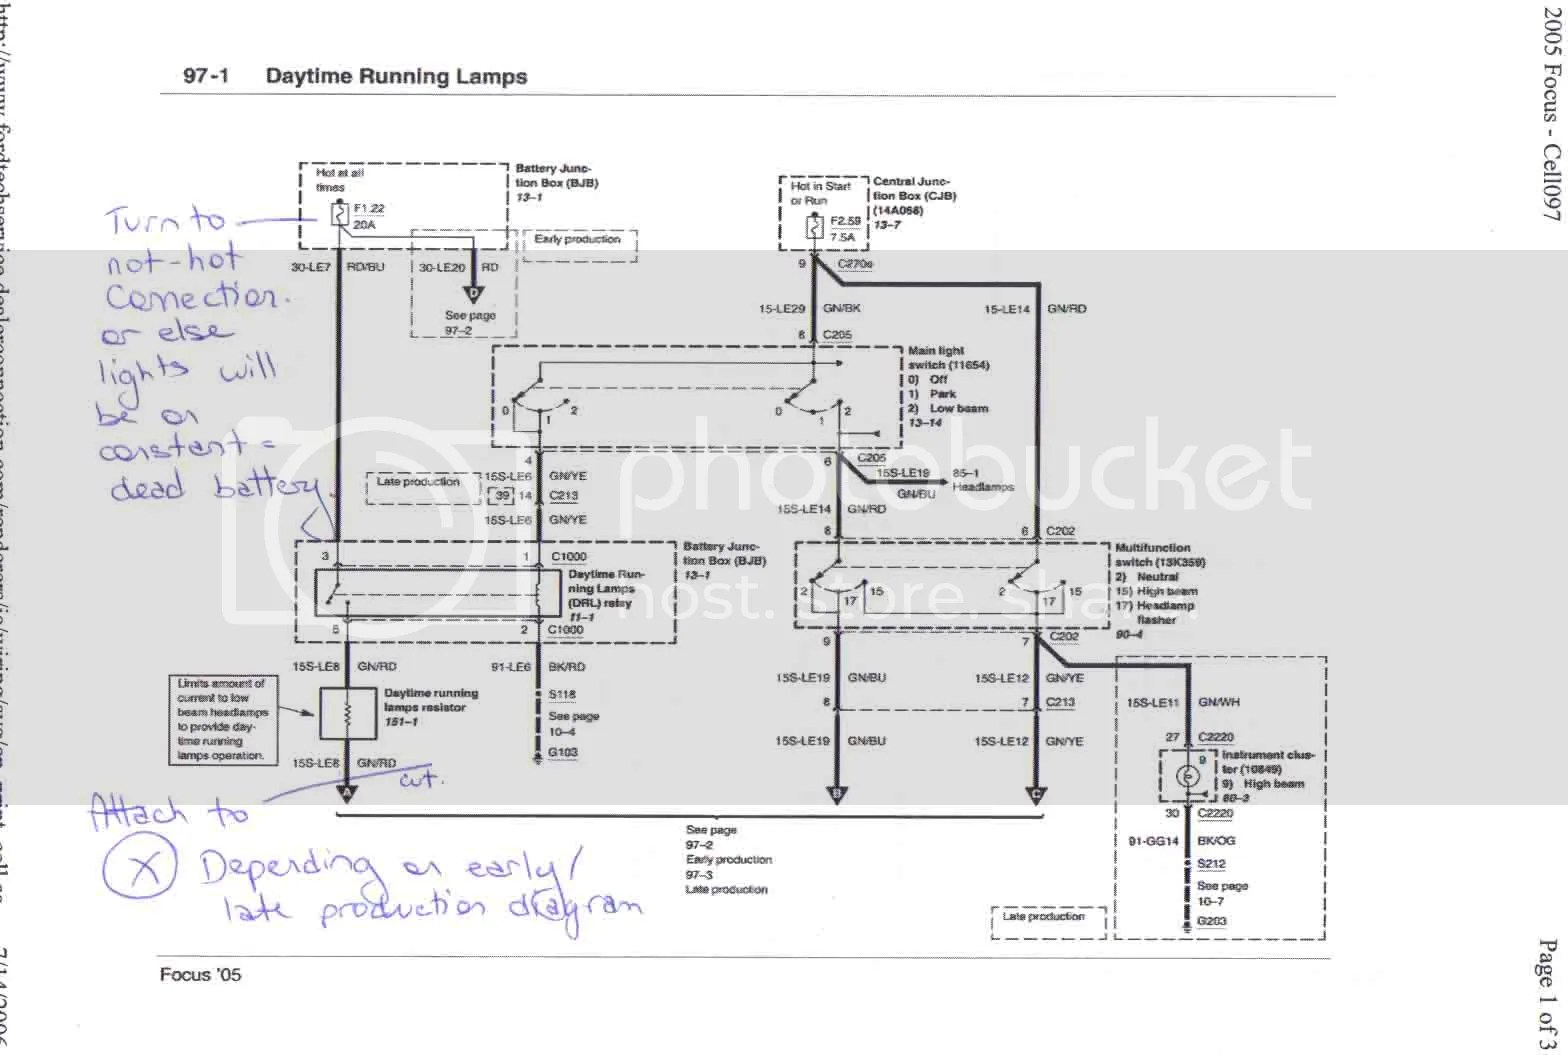 DRLdiagrampage1?resize=665%2C447 ford focus wiring diagram for towbar wiring diagram  at gsmx.co